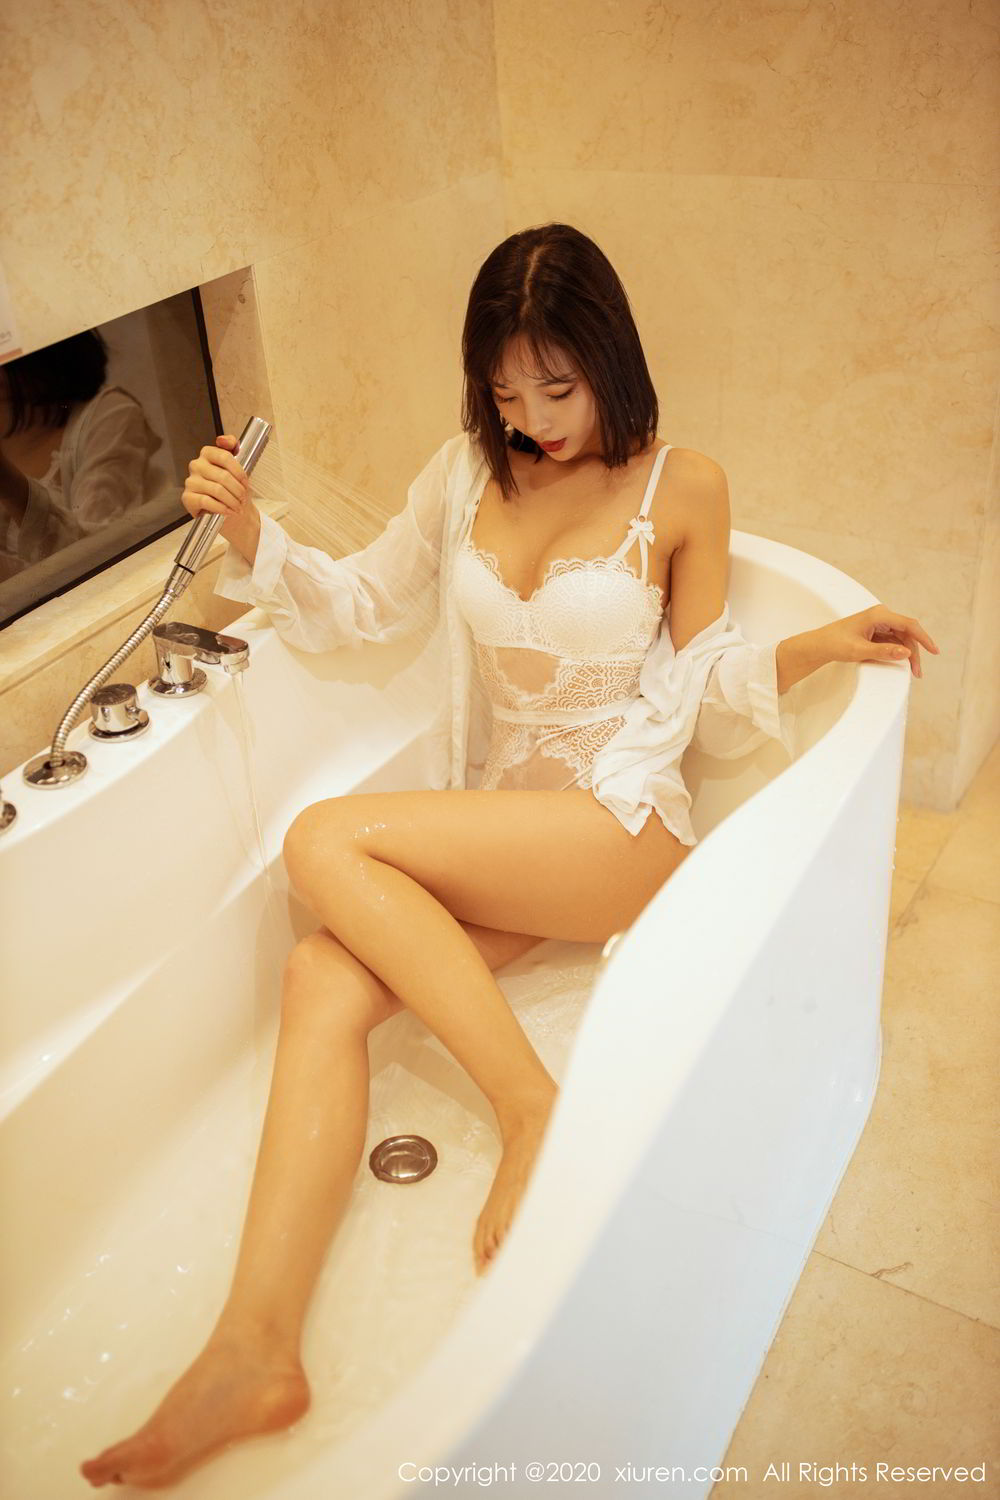 [XiuRen] Vol.2158 Chen Xiao Miao 18P, Bathroom, Chen Xiao Miao, Tall, Wet, Xiuren